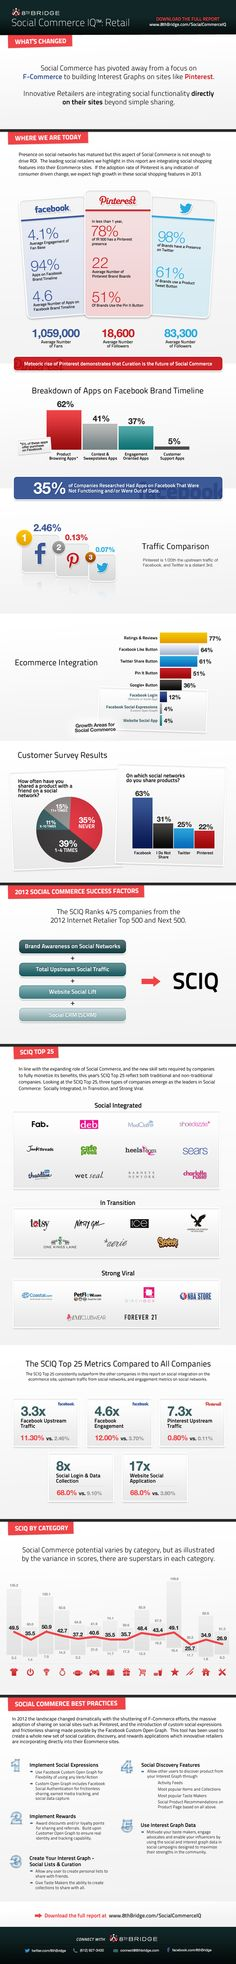 How Is Social Commerce Being Integrated By Retailers? #infographic